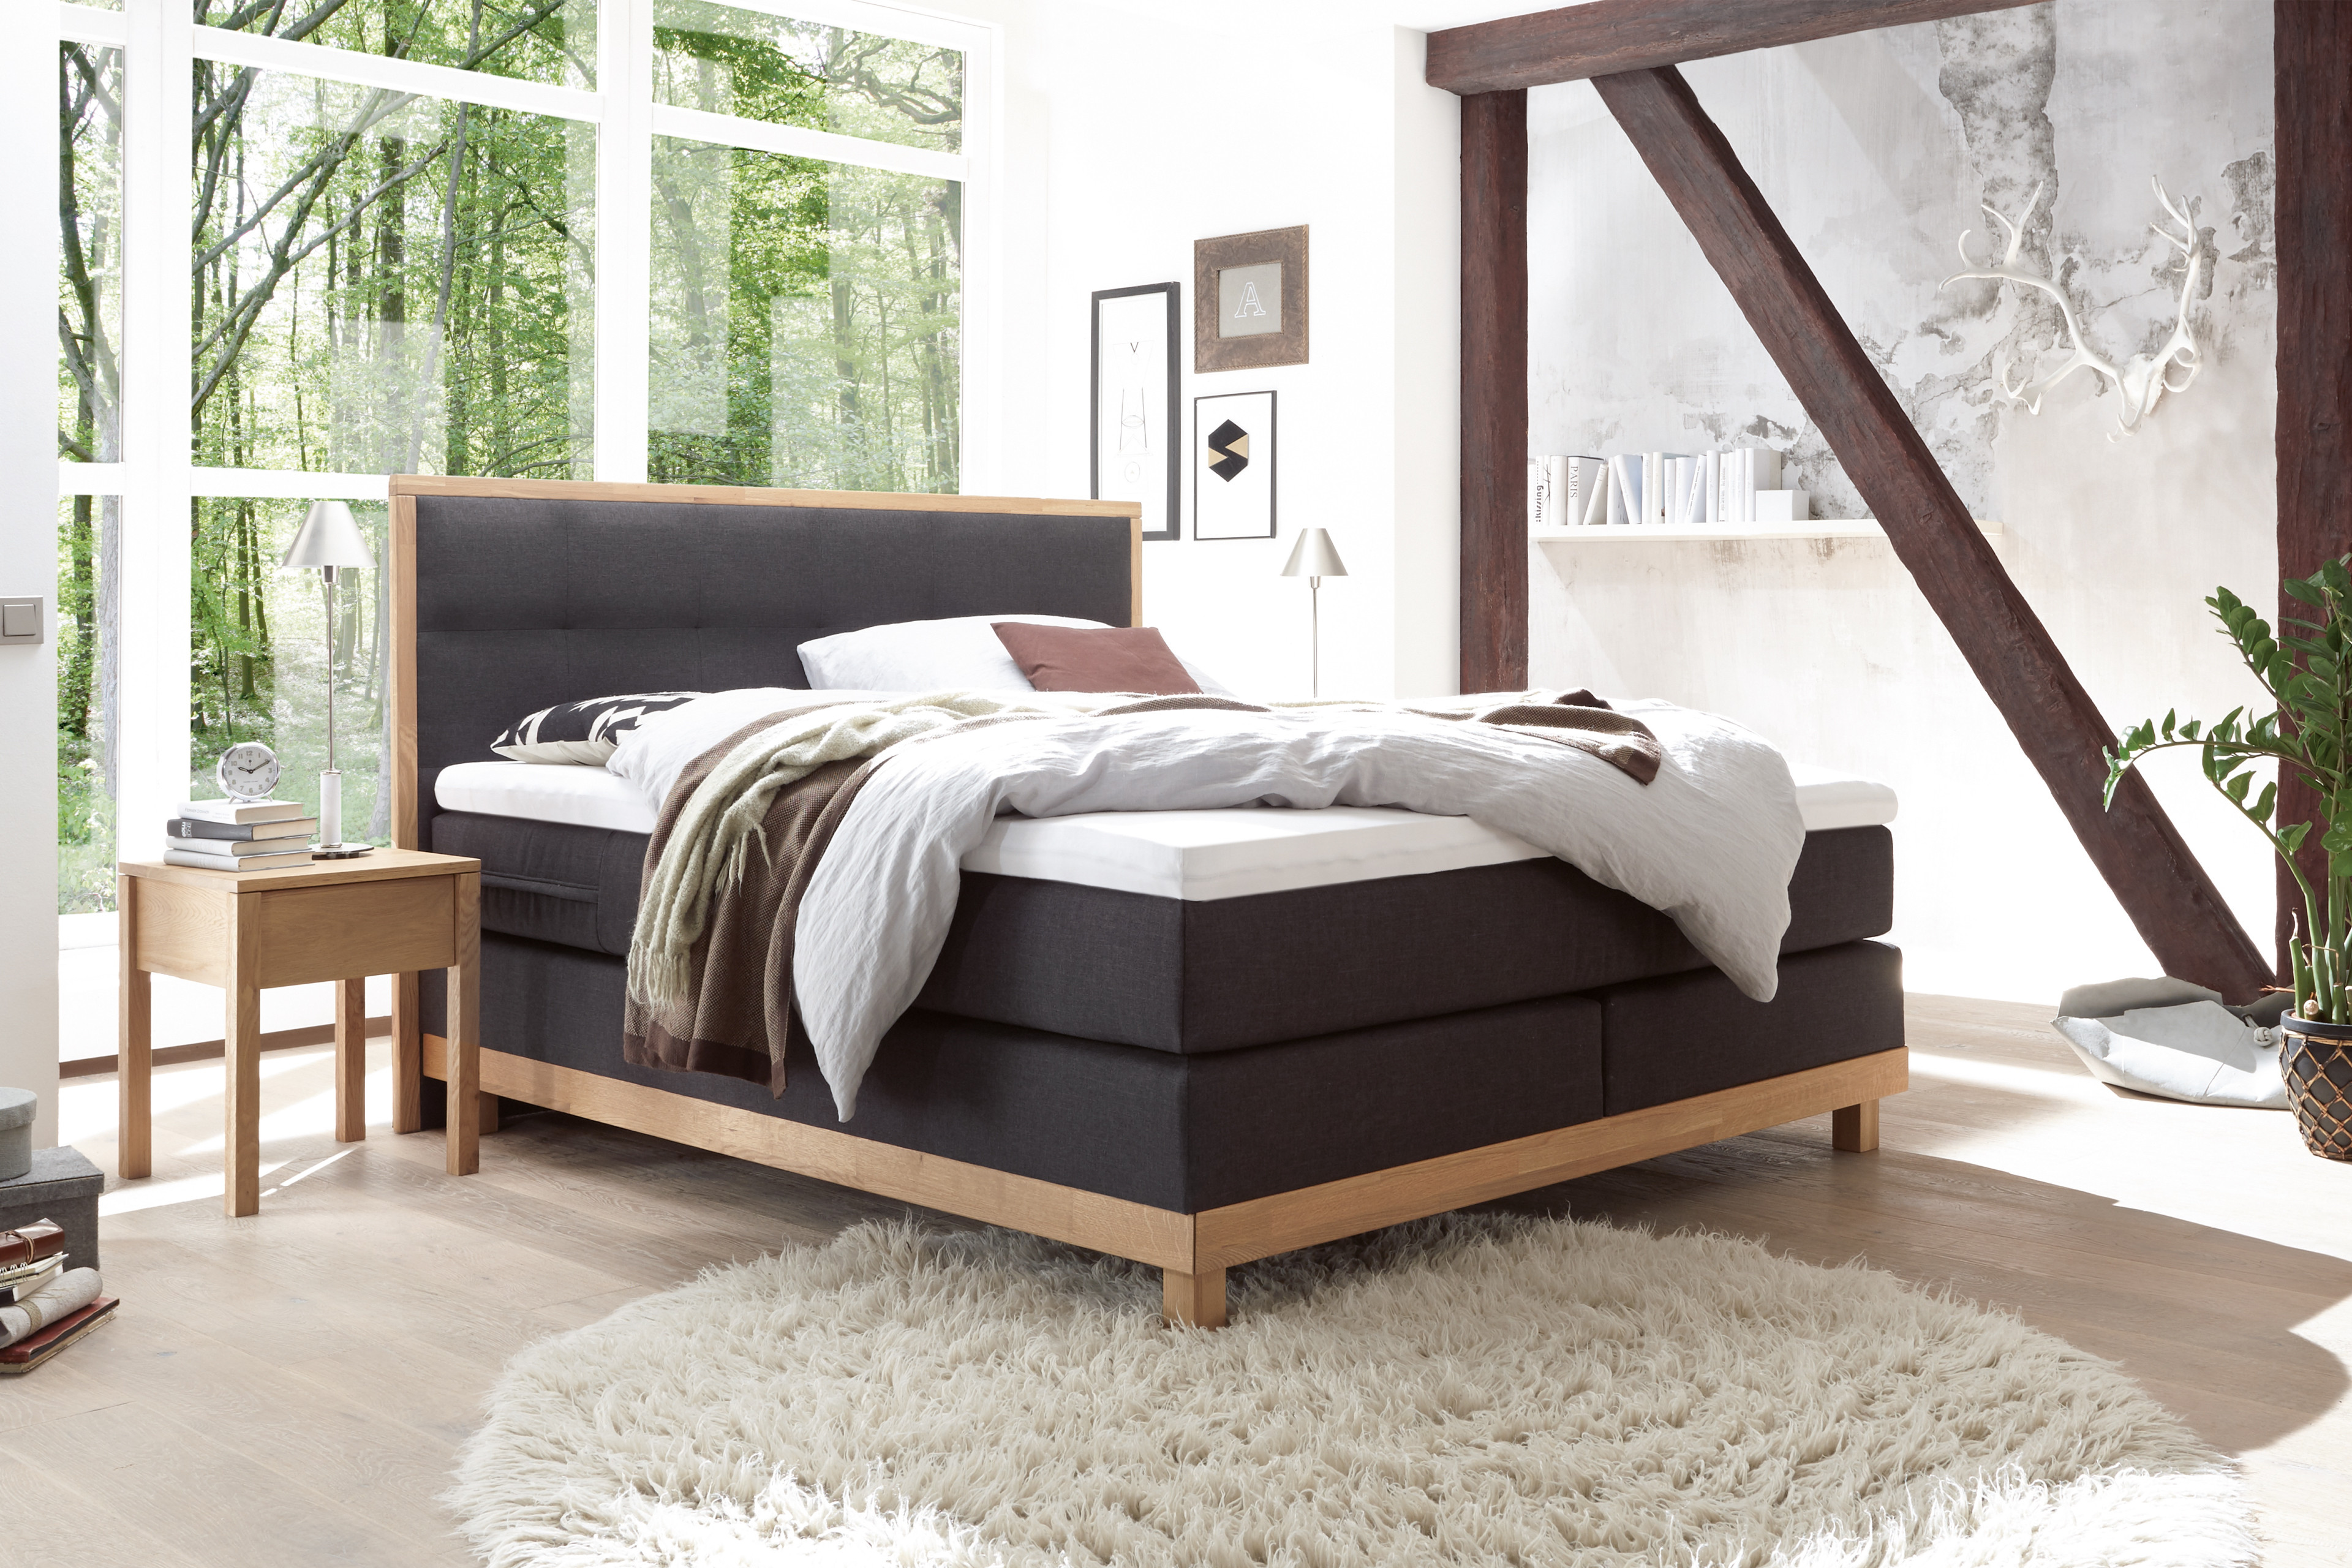 hasena pronto chalet boxspringbett anthrazit m bel letz ihr online shop. Black Bedroom Furniture Sets. Home Design Ideas